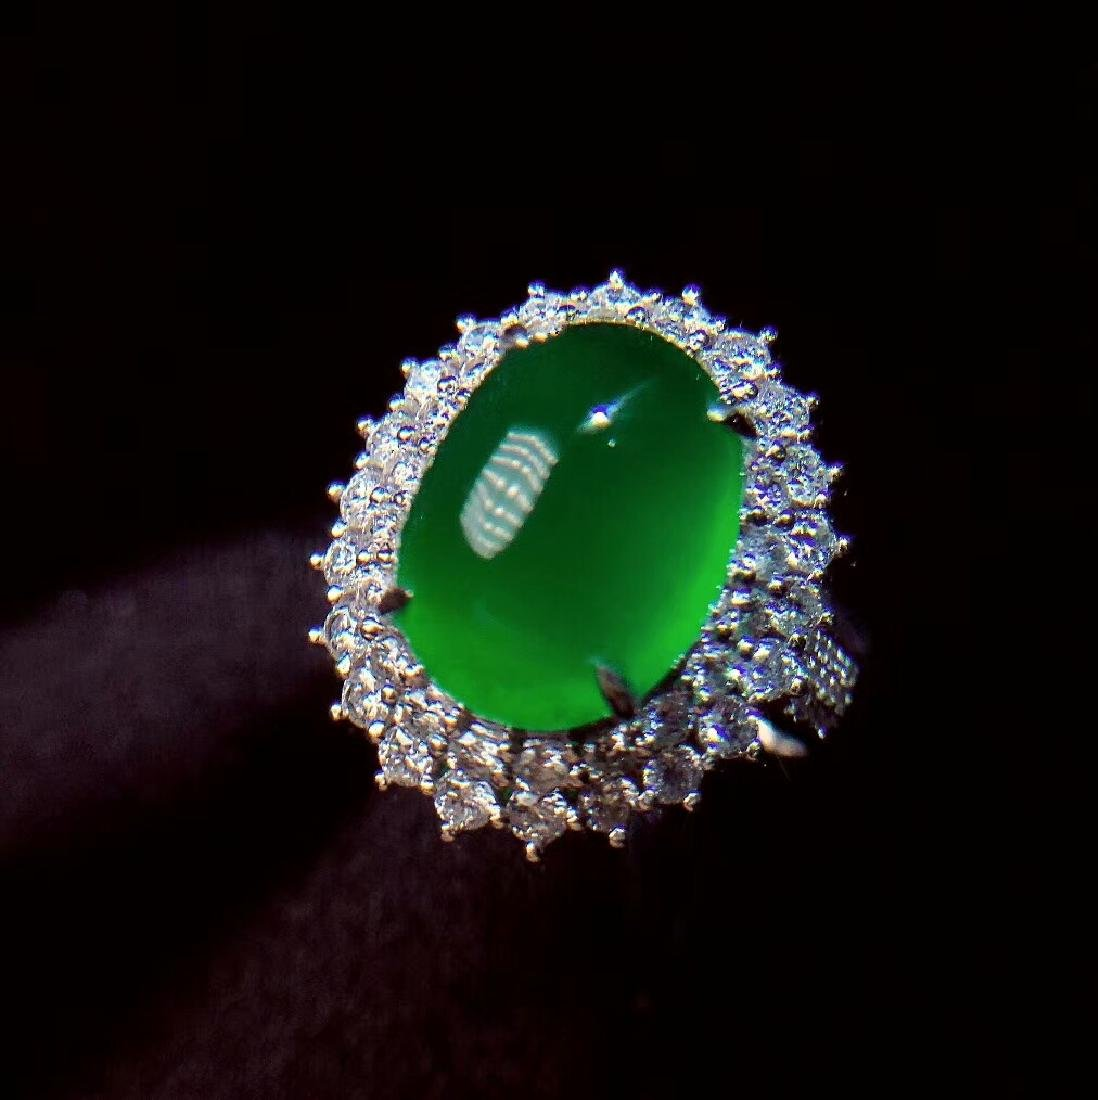 7.6ct Emerald Ring in 18kt White Gold - 3